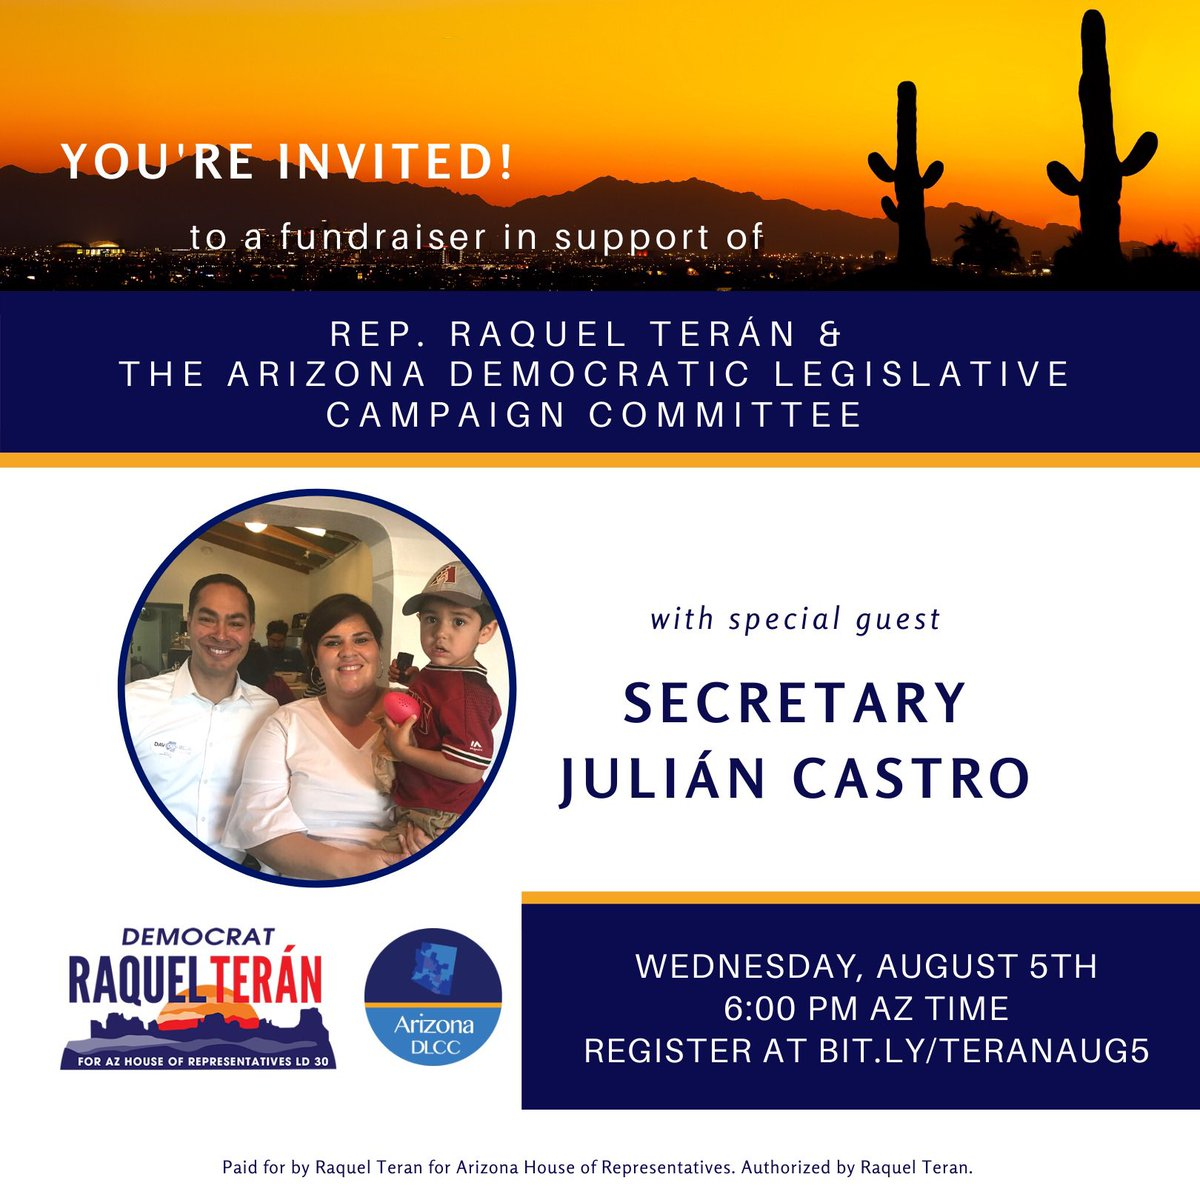 #TeamTerán is excited to announce we will be joined by fmr. Secretary ⁦@JulianCastro⁩ at our Wednesday event benefiting our campaign and the ⁦@A_DLCC⁩ to ensure a pathway to the majority in the #AZ House and Senate. Register here: us02web.zoom.us/meeting/regist…